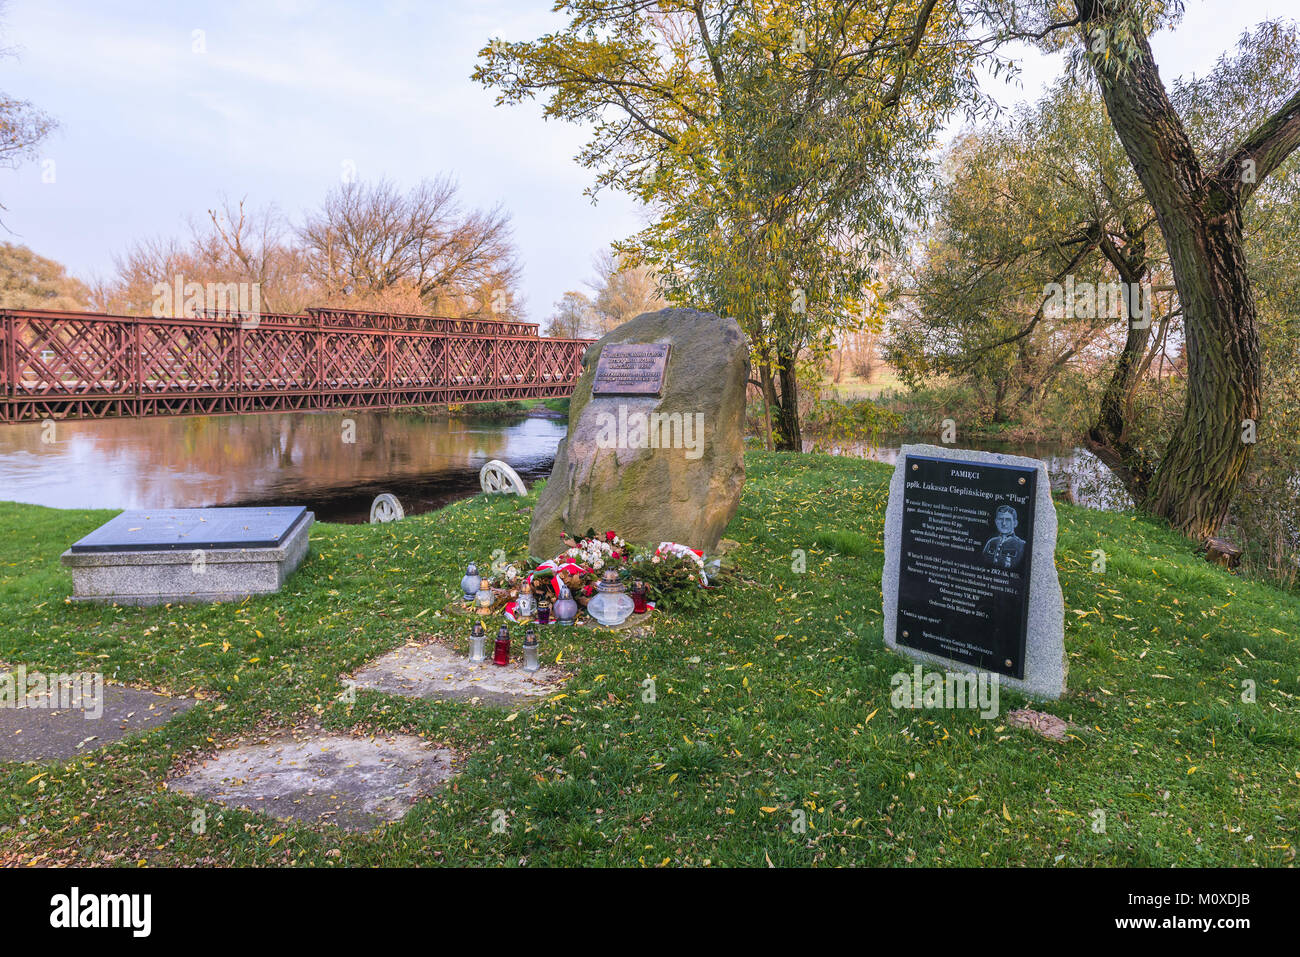 Memorial stone of Battle of the Bzura River of 1938 German Invasion of Poland in Witkowice village, Sochaczew County - Stock Image